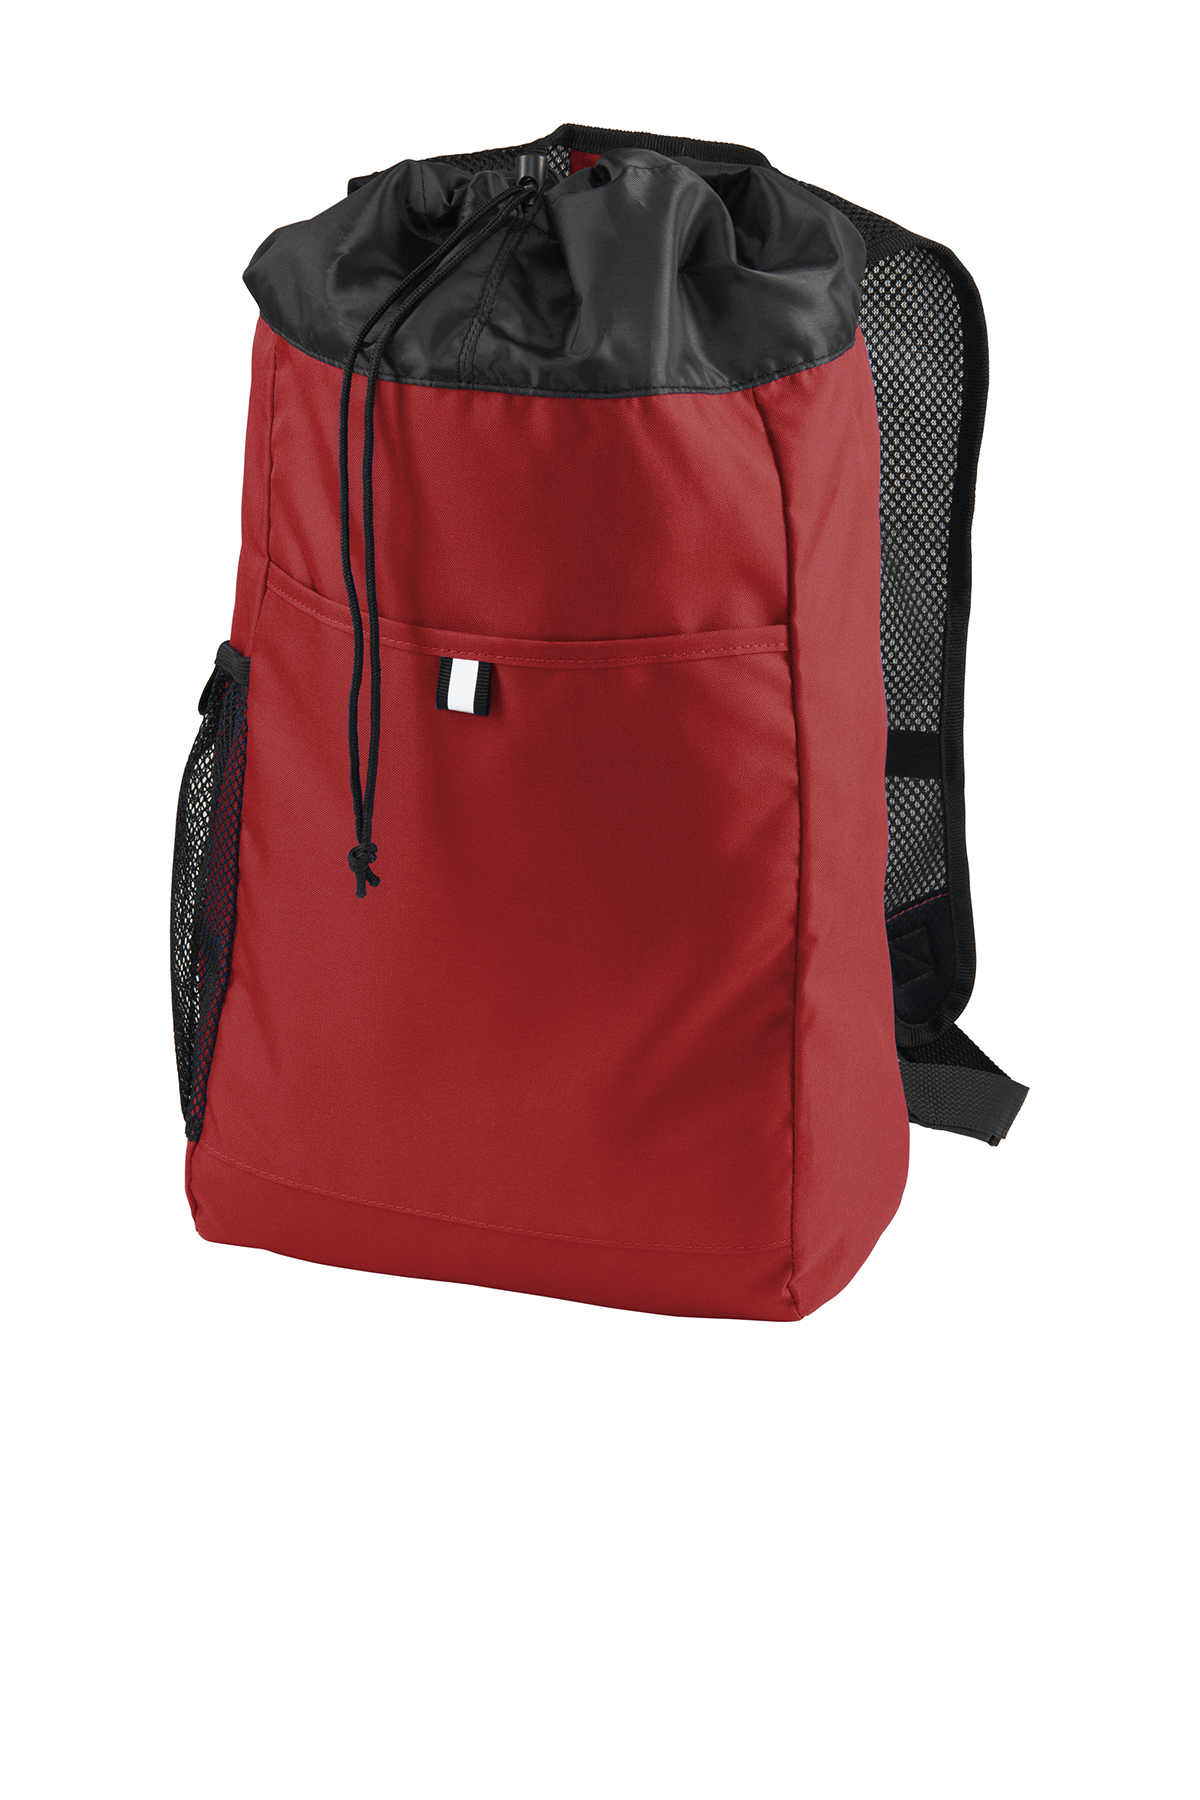 Port Authority BG211 - Hybrid Backpack